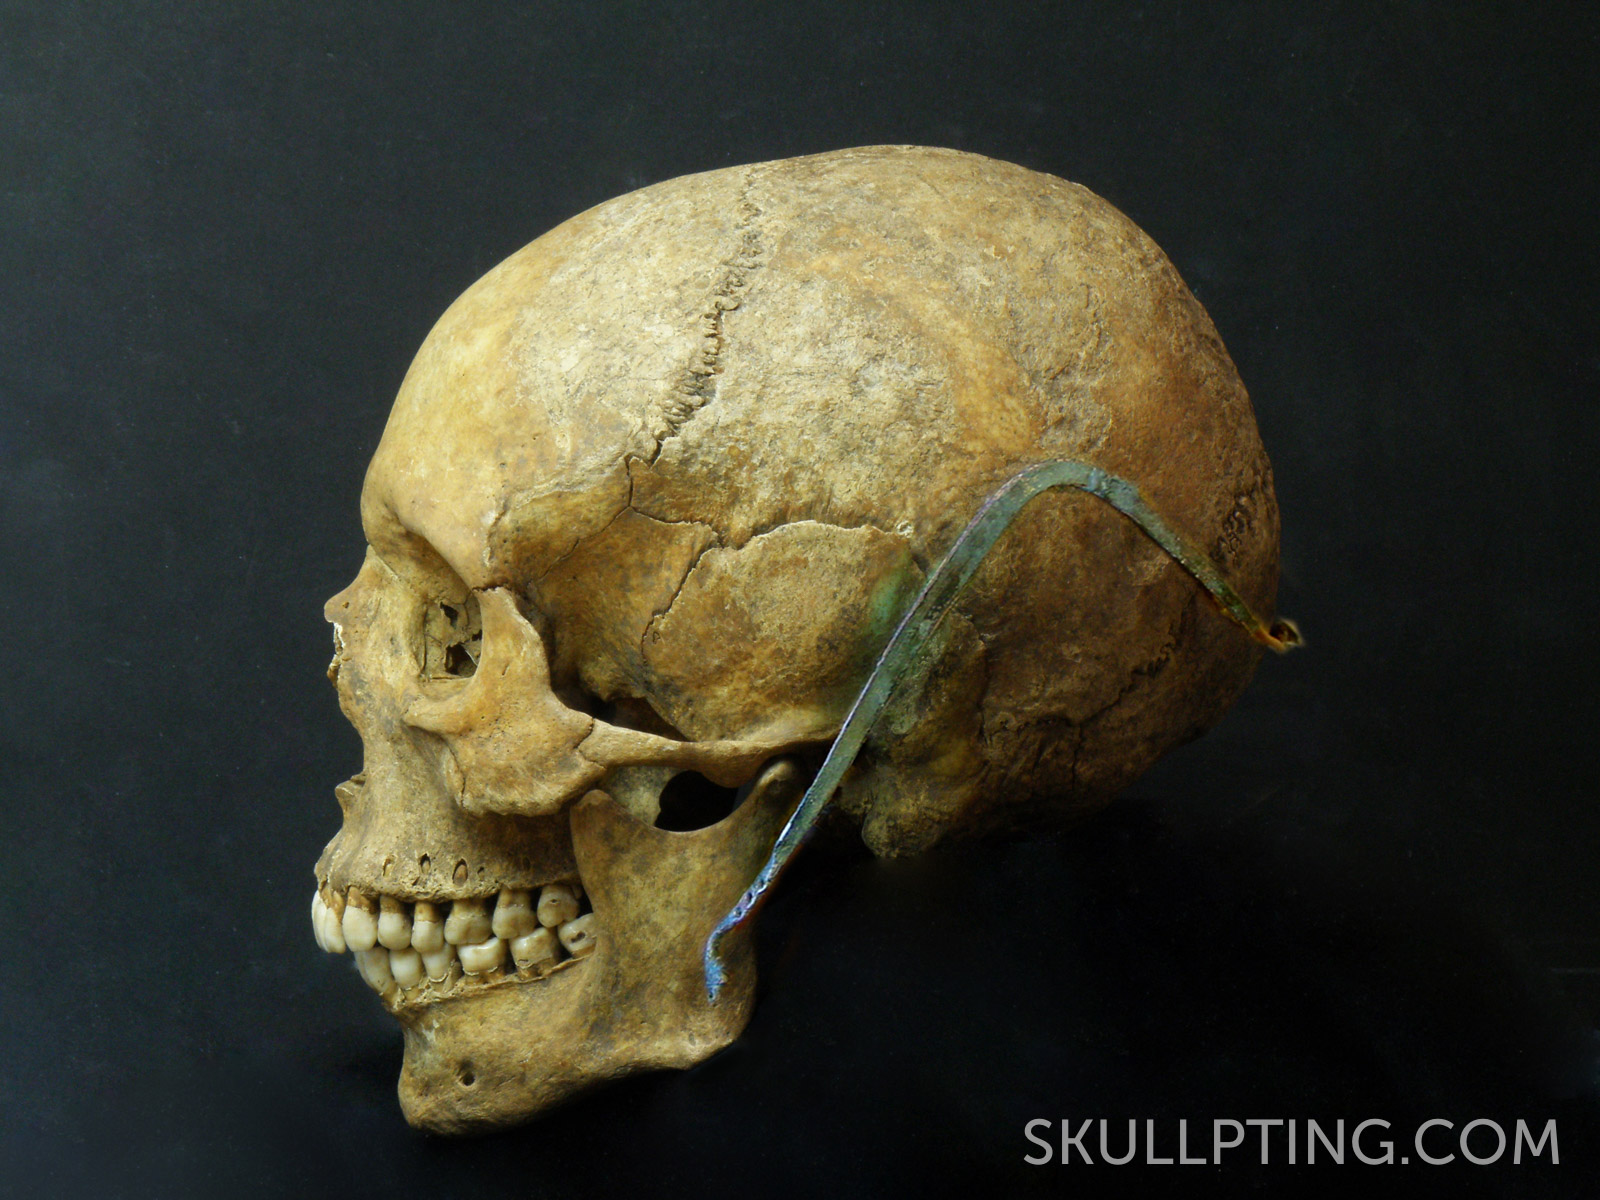 Skull with cap broach.